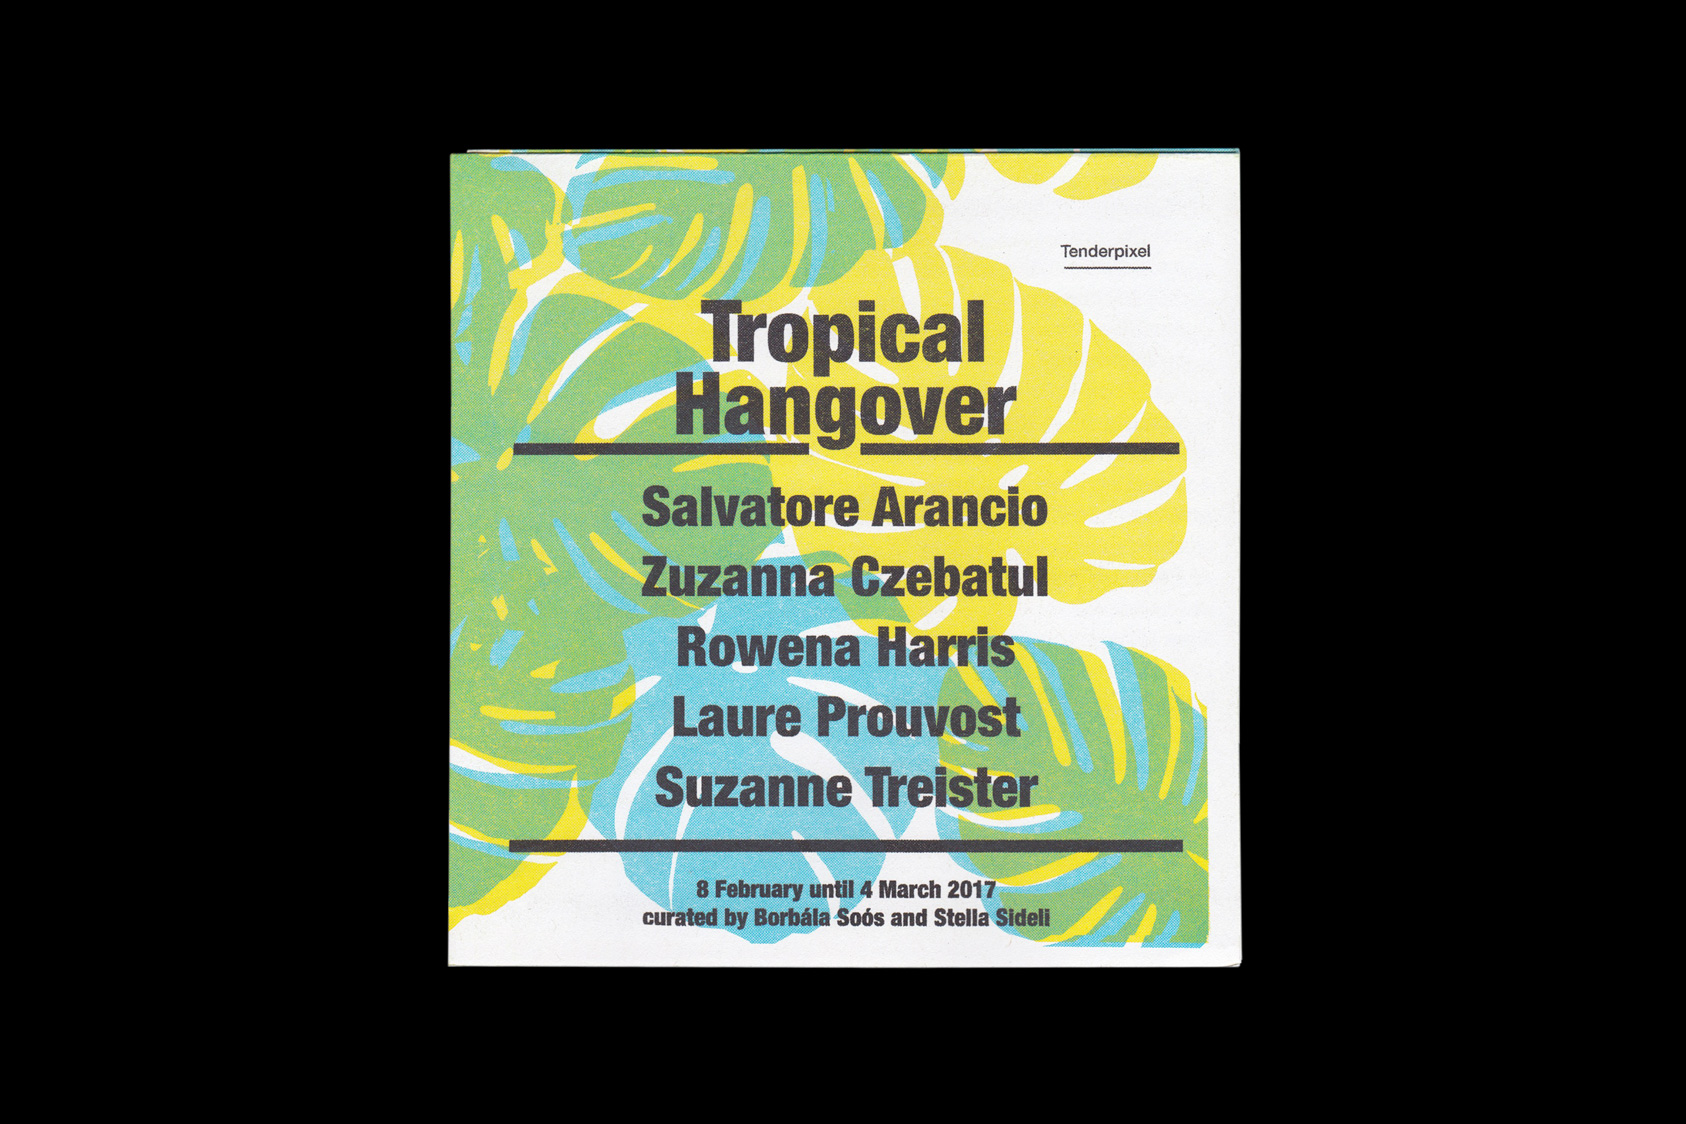 Tropical Hangover - a publication for Tenderpixel gallery, 2017 by the agency for emerging ideas